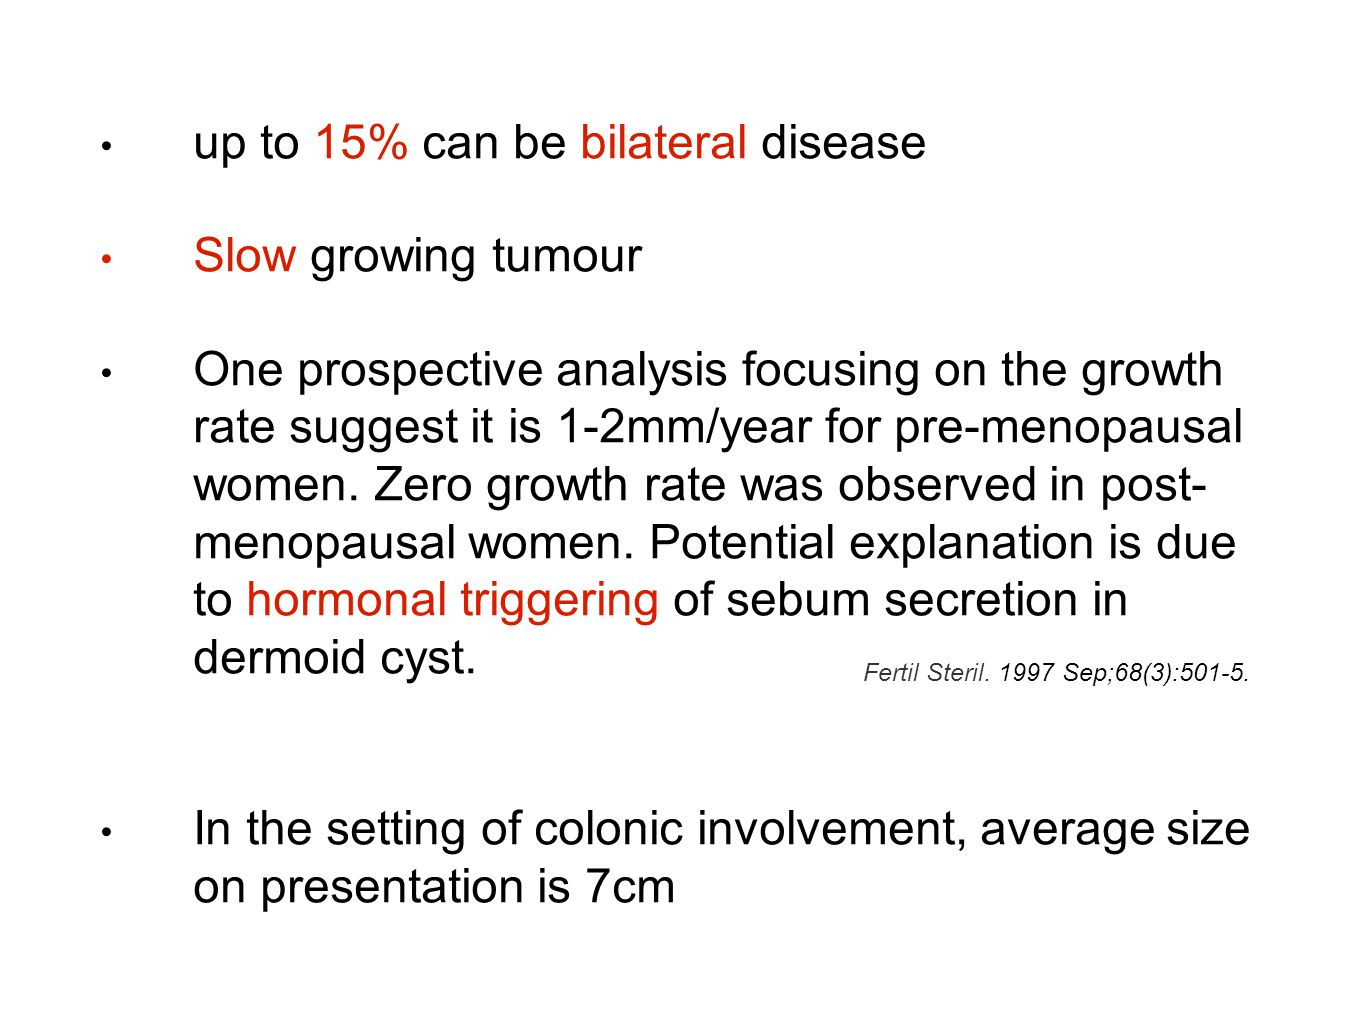 up to 15% can be bilateral disease Slow growing tumour One prospective analysis focusing on the growth rate suggest it is 1-2mm/year for pre-menopausal women.